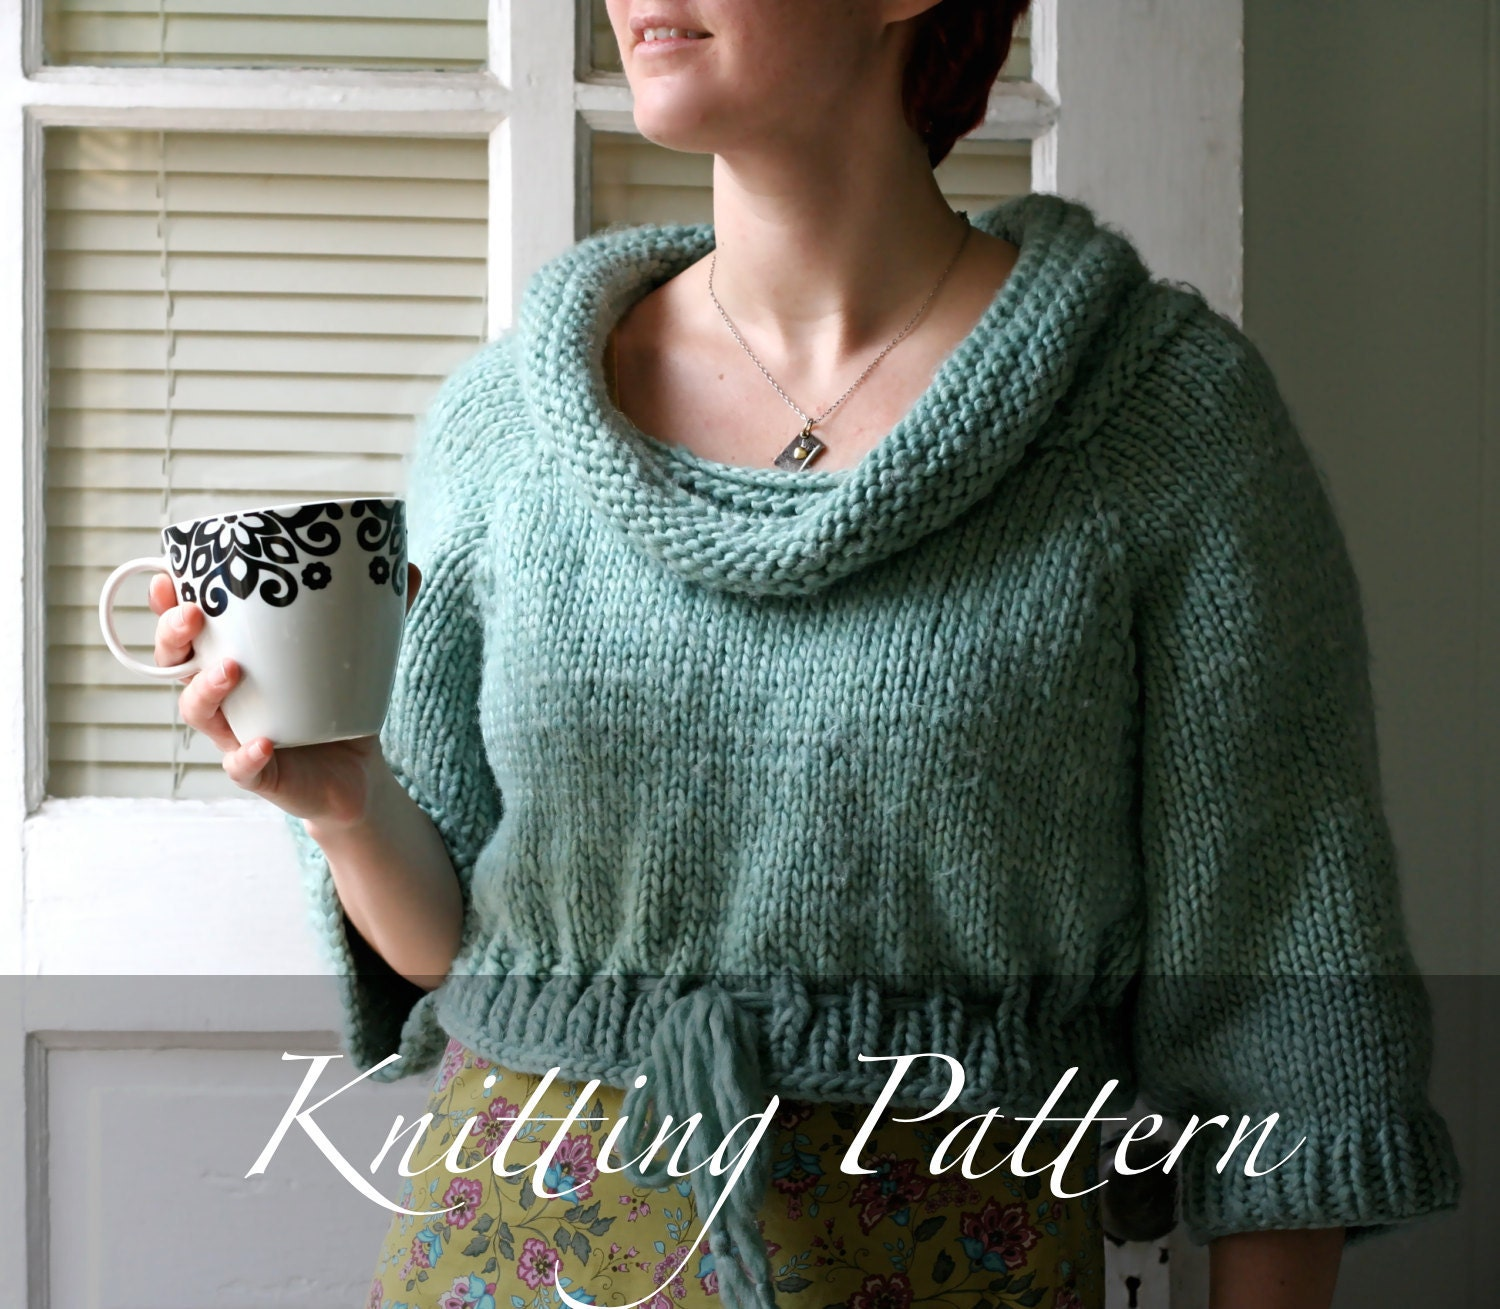 Knitting Pattern - The Cozy Cropped Pullover - Boatneck Sweater ...